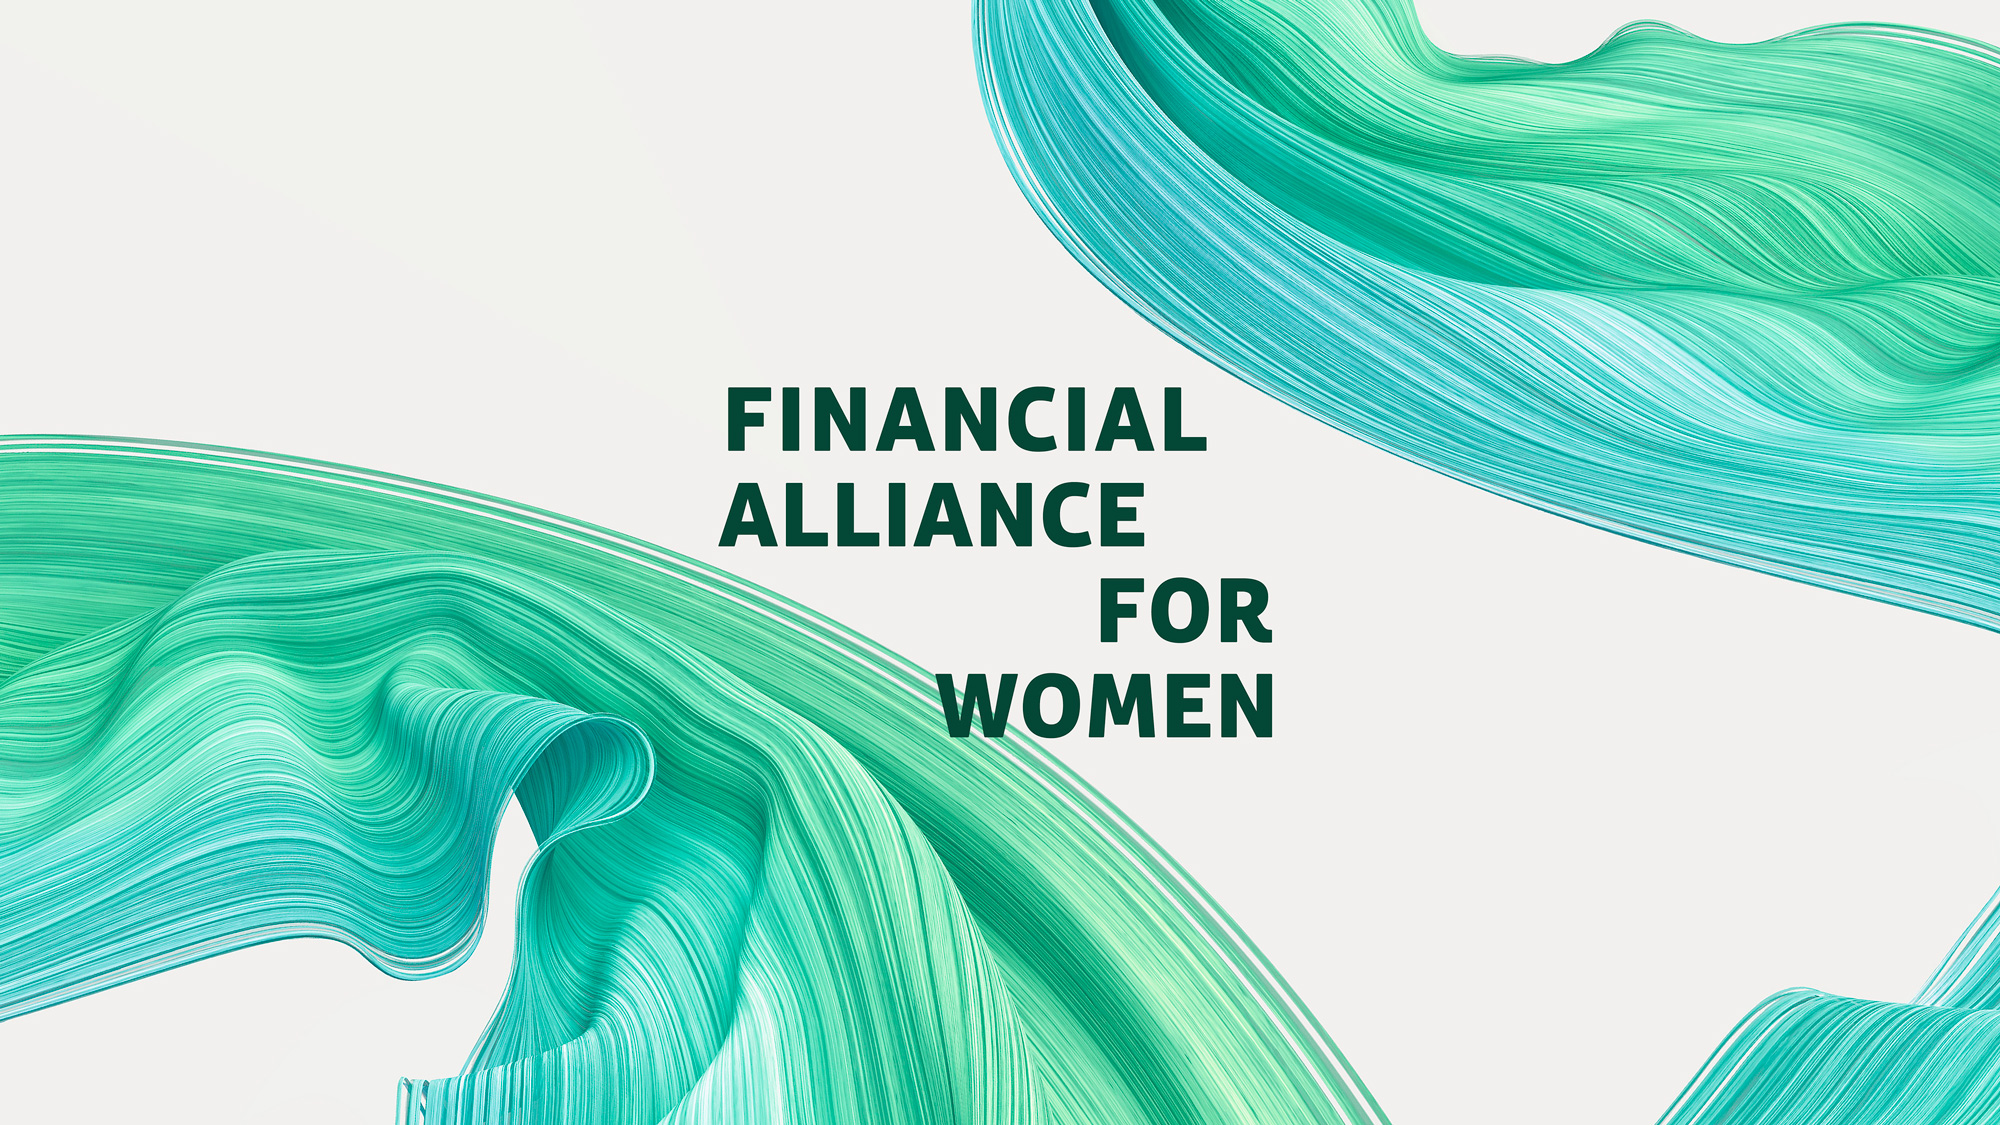 New Logo and Identity for Financial Alliance for Women by Design Bridge